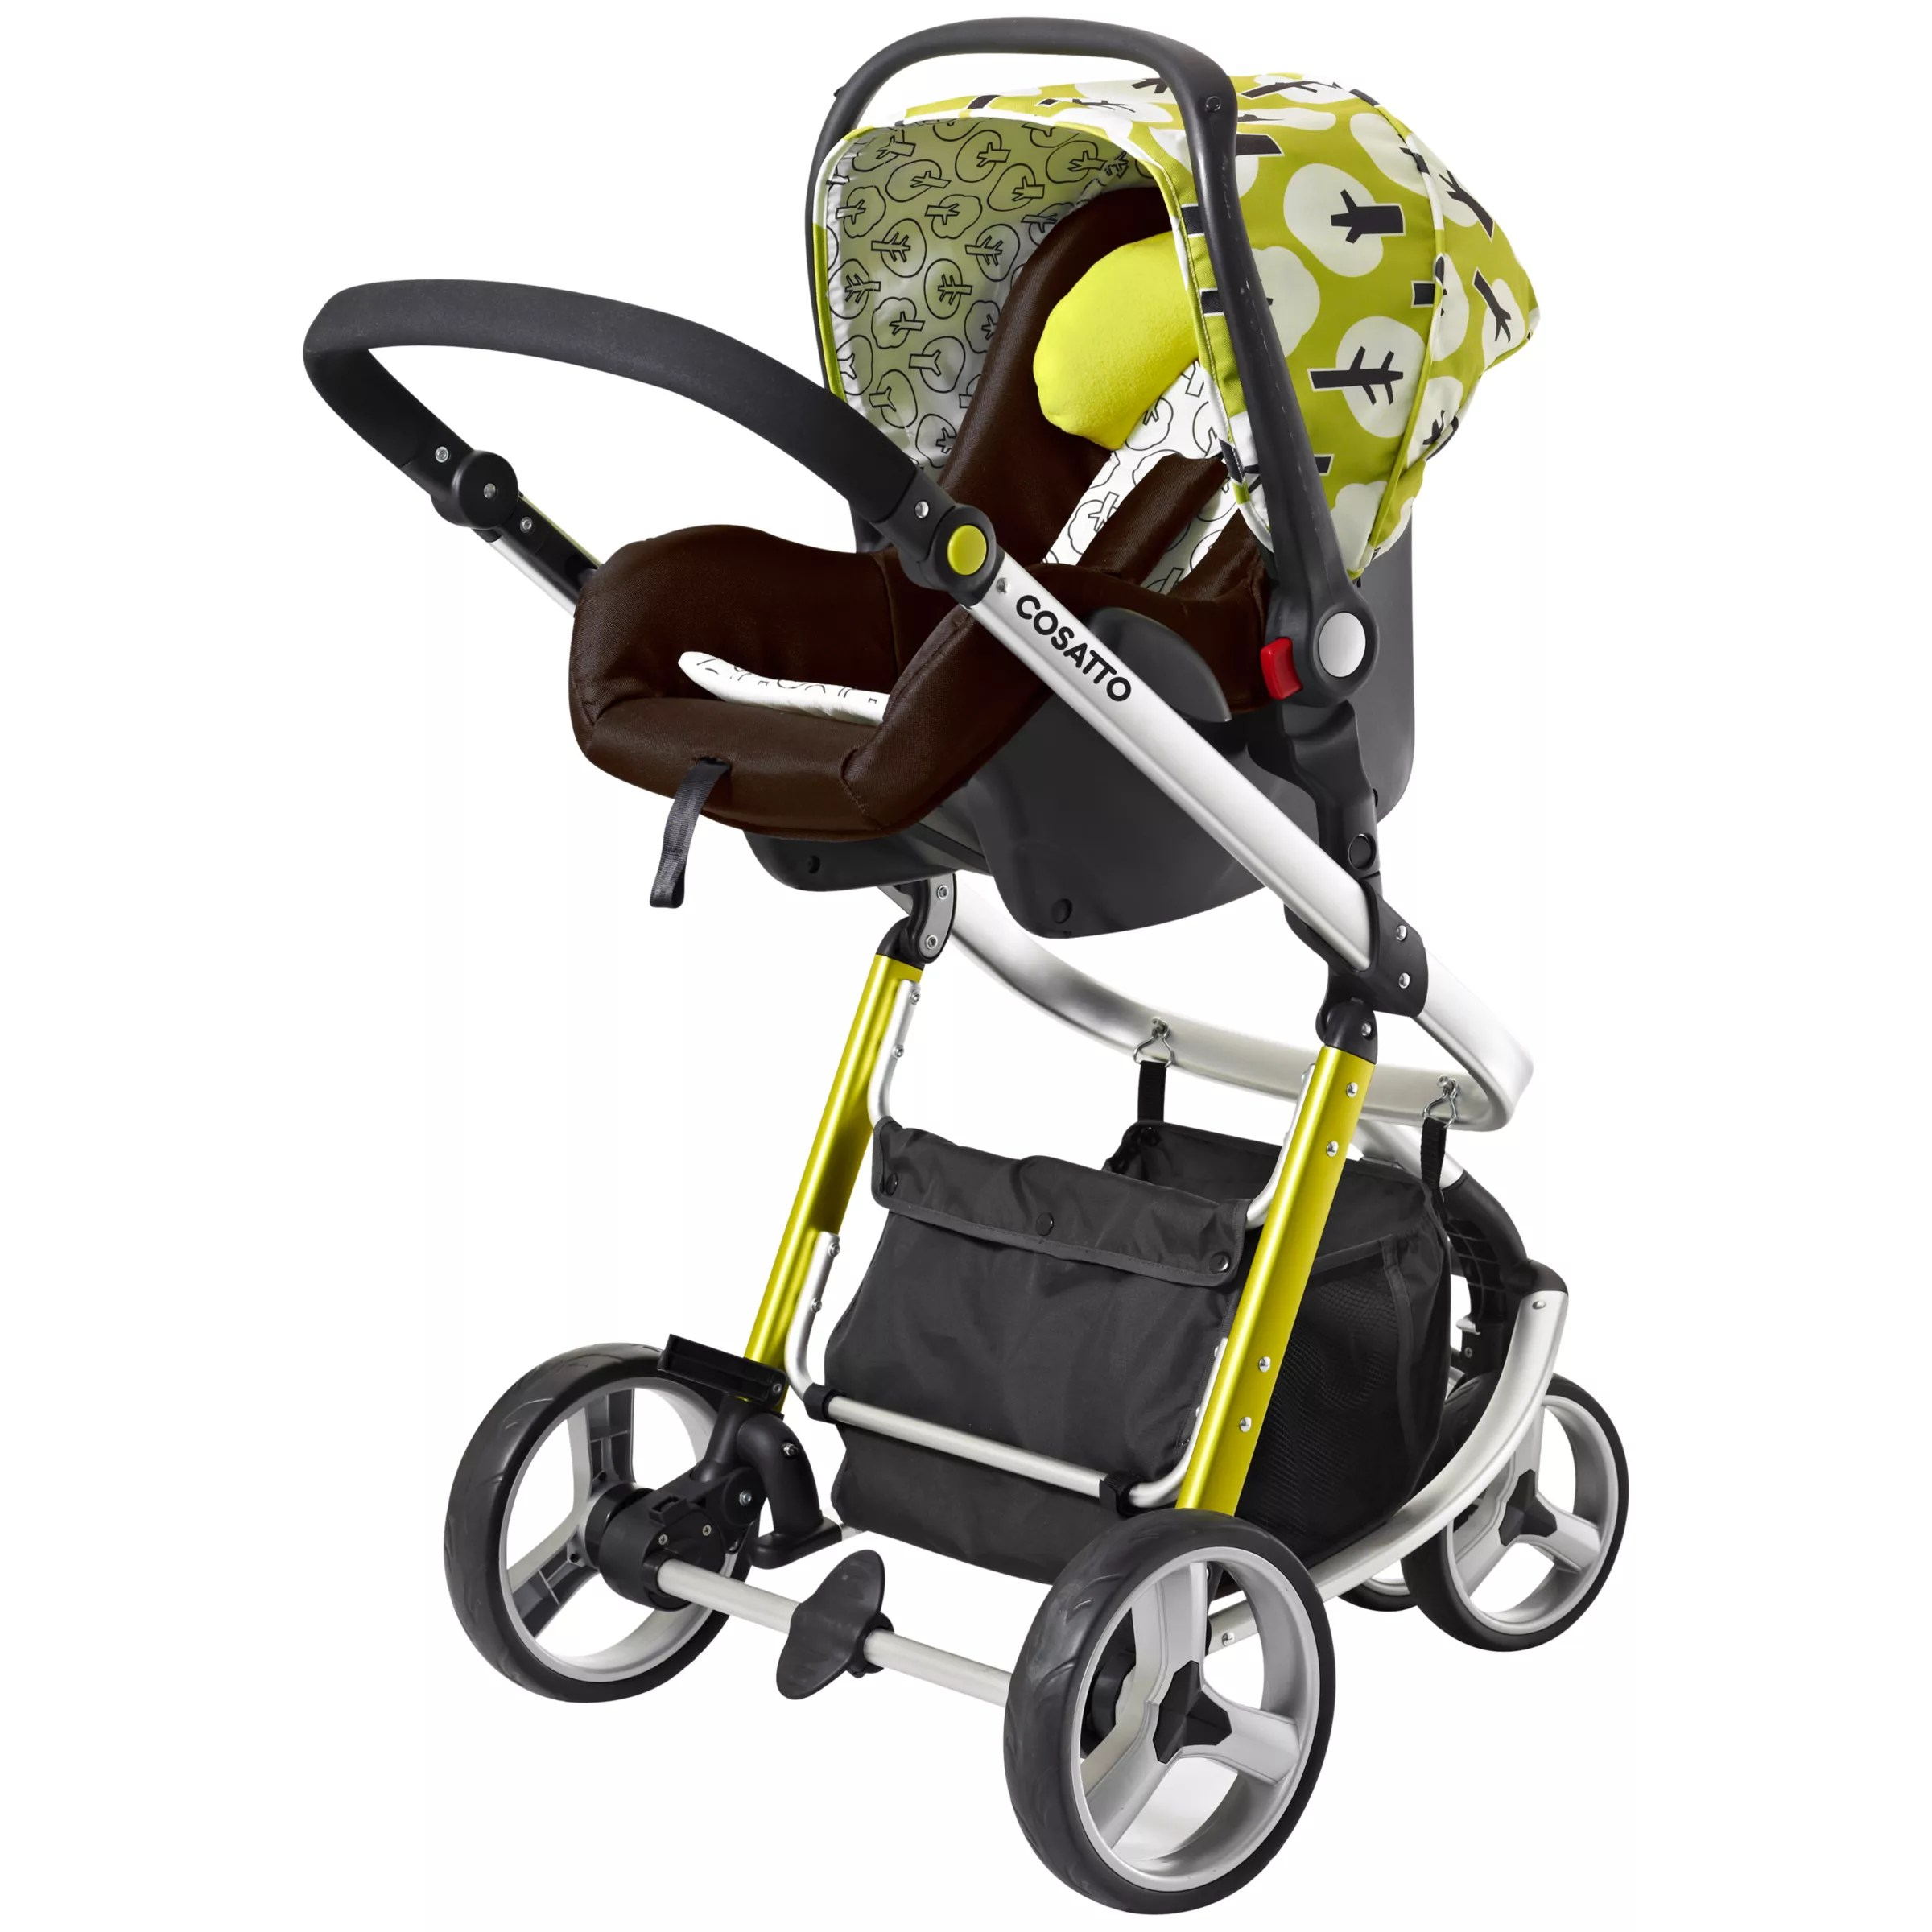 John Lewis Pushchairs From Birth Cosatto Giggle 3 In 1 Combi Pushchair Treet At John Lewis